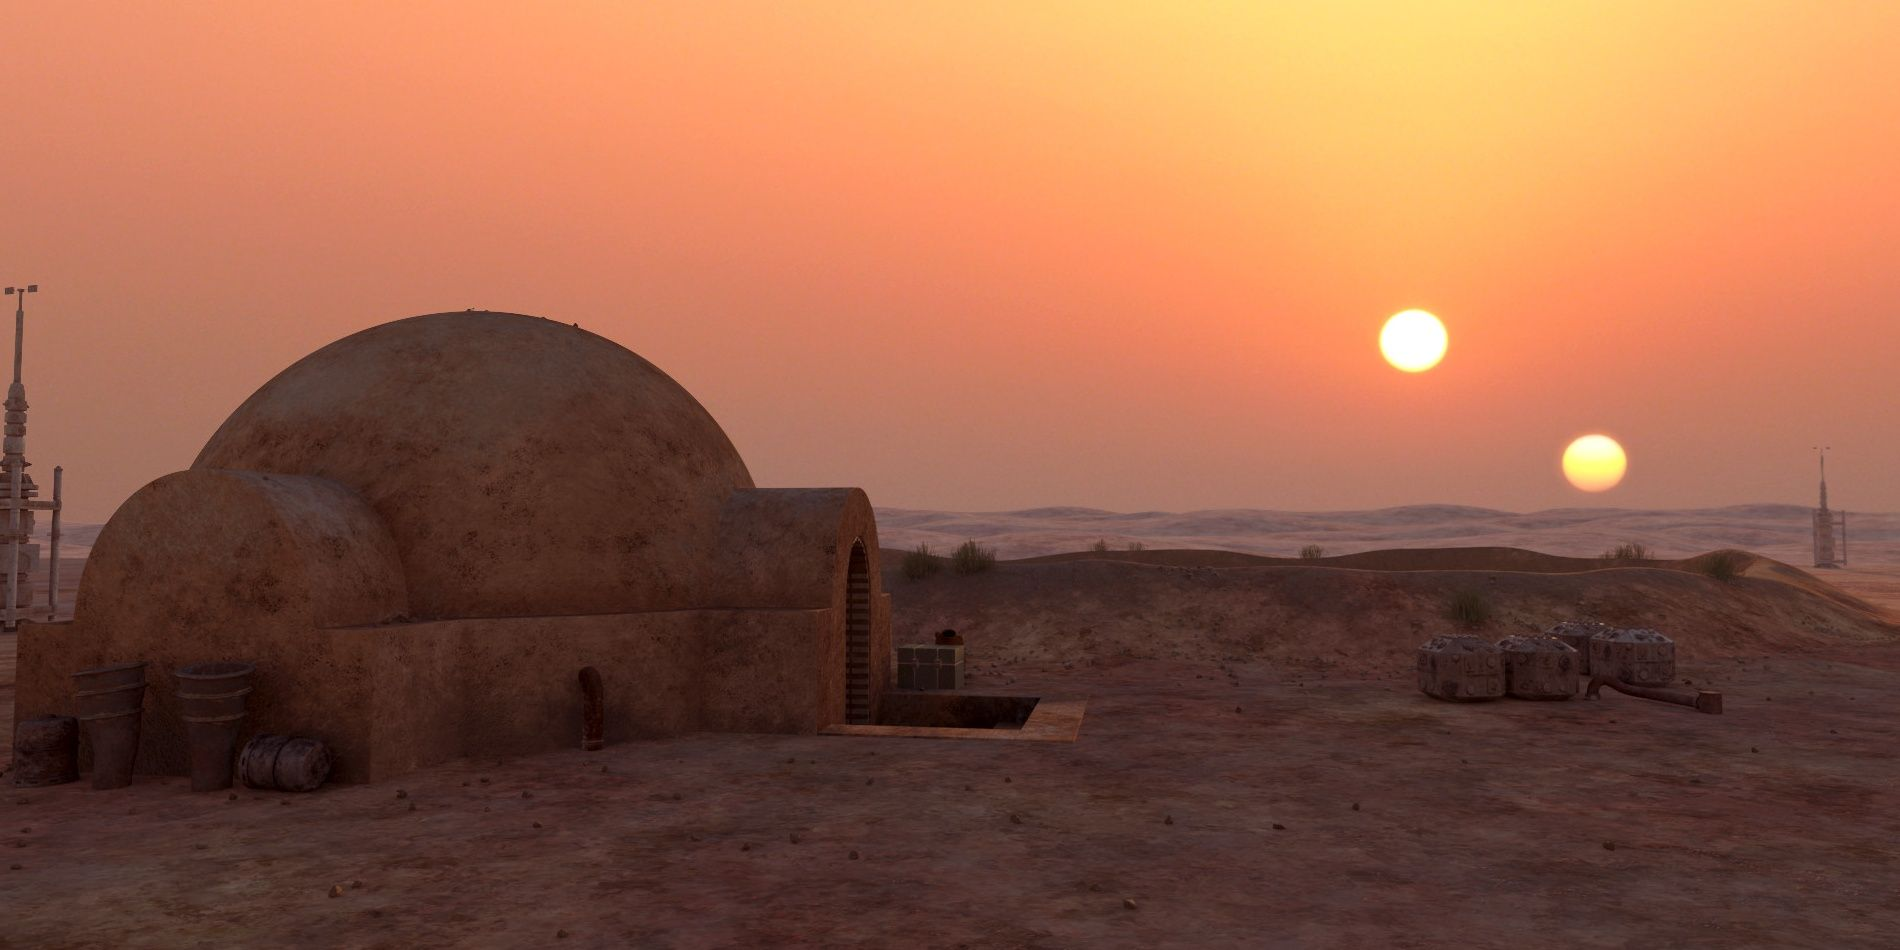 https://static0.cbrimages.com/wordpress/wp-content/uploads/2018/08/Star-Wars-Tatooine-sunset.jpg